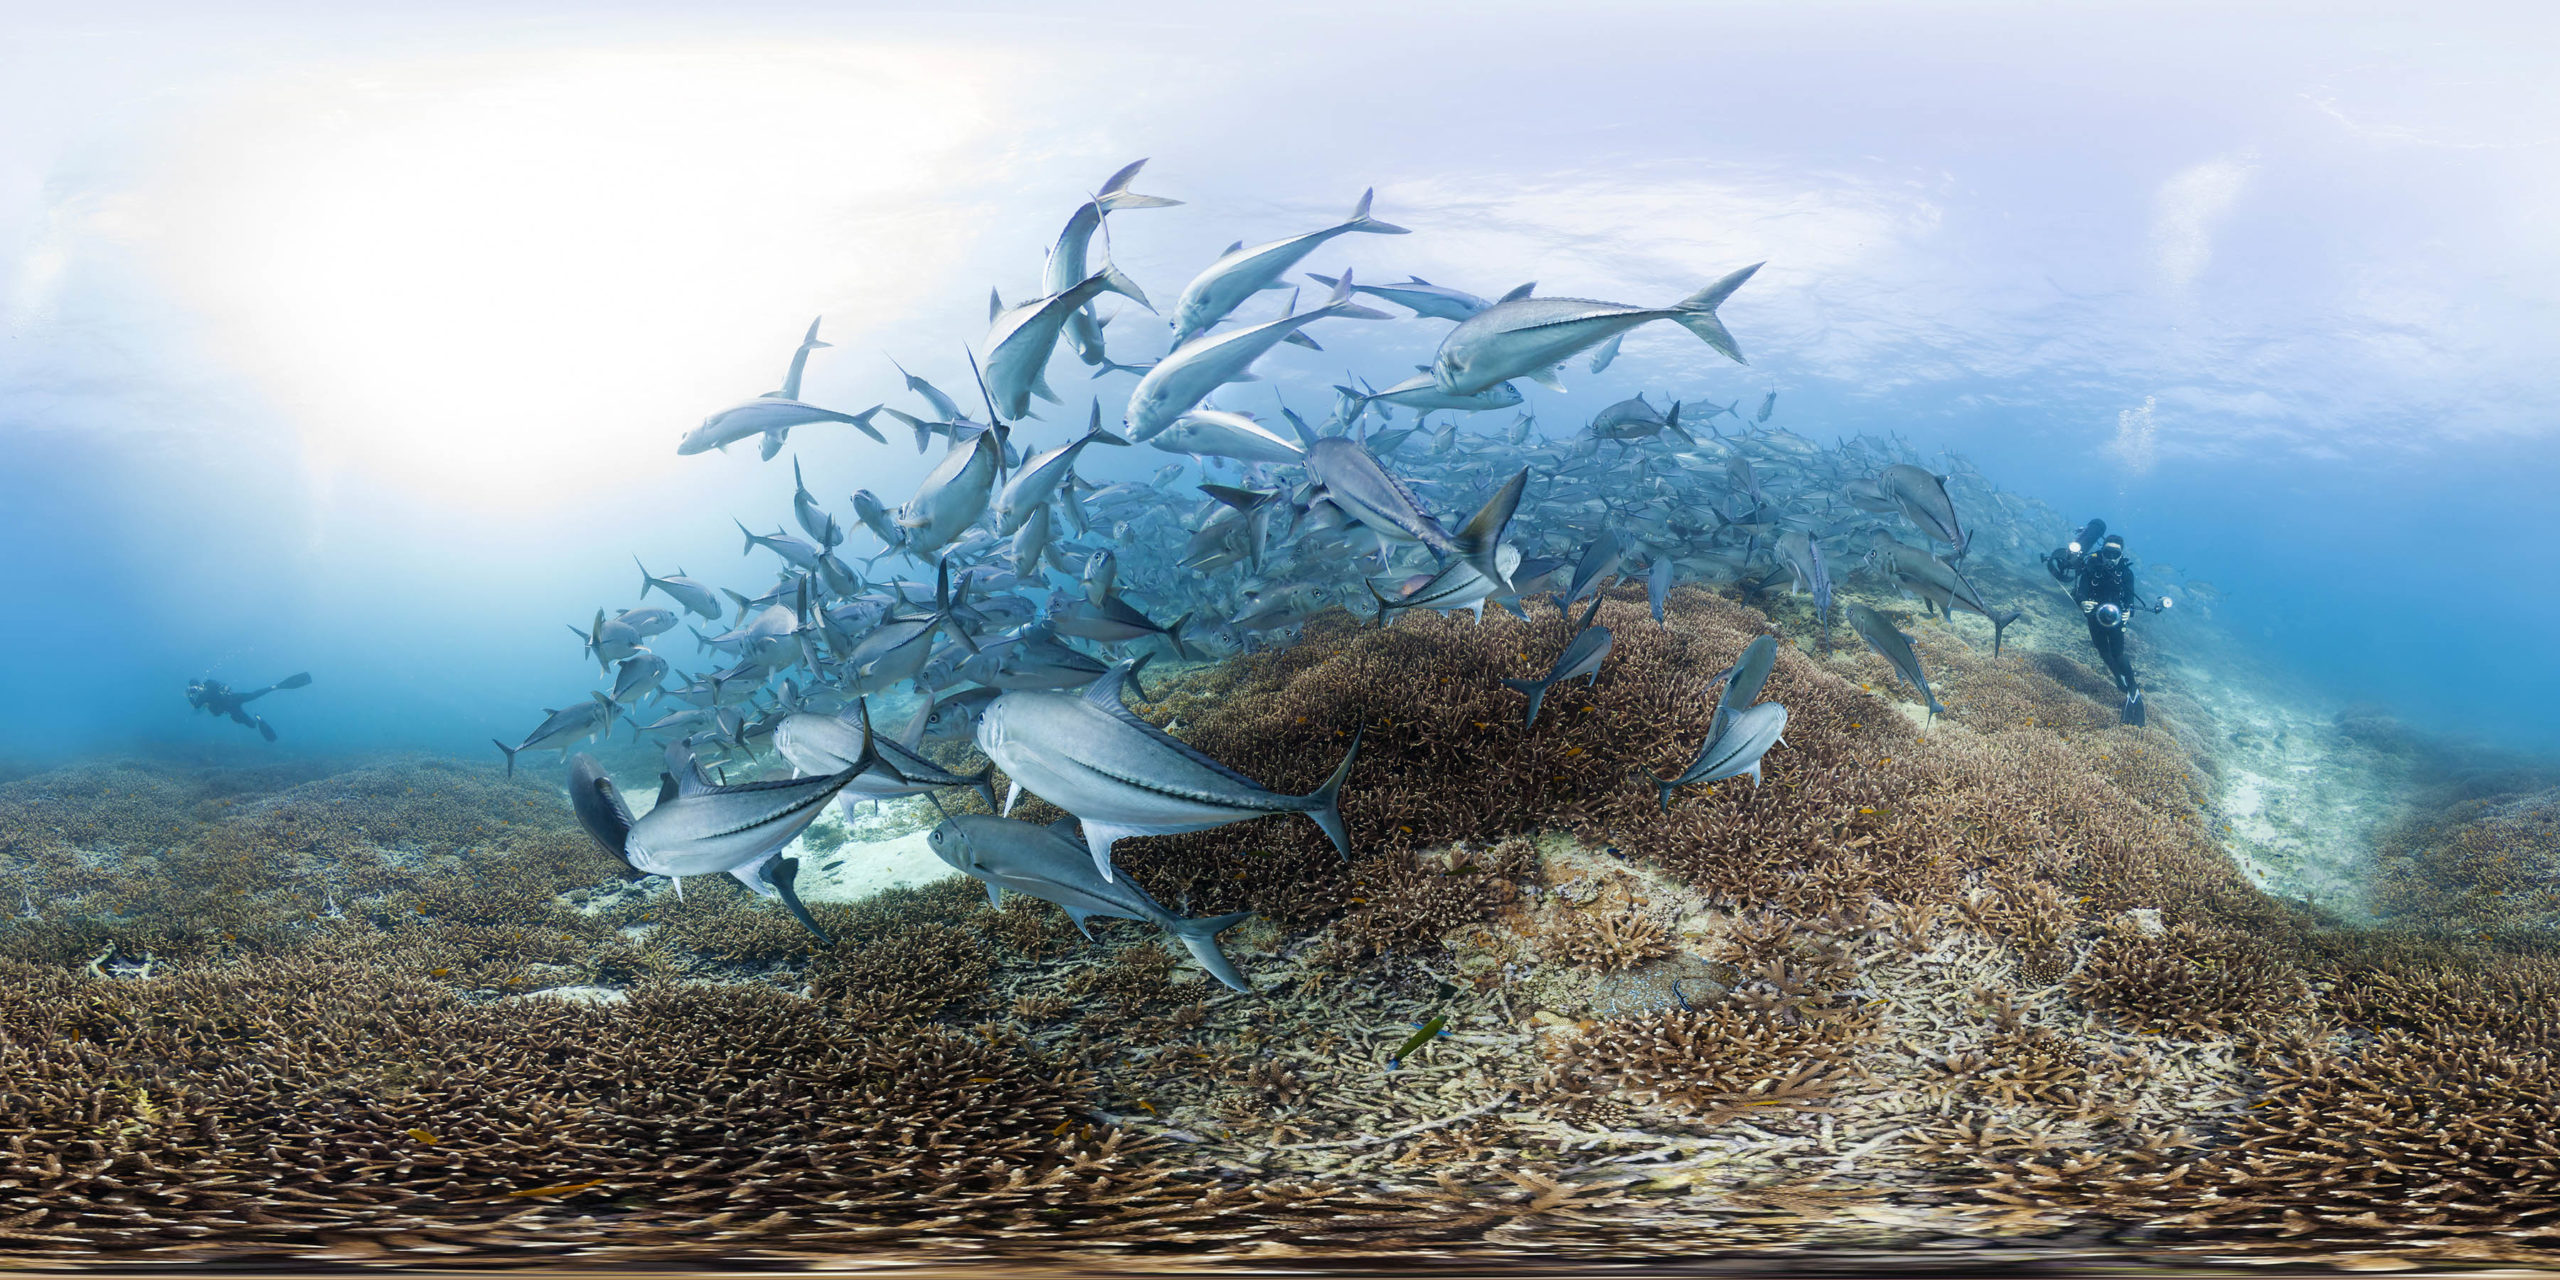 A still from Chasing Coral: The VR Experience by Jeff Orlowski, an official selection of the New Frontier VR Experiences program at the 2017 Sundance Film Festival. © 2016 Sundance Institute.